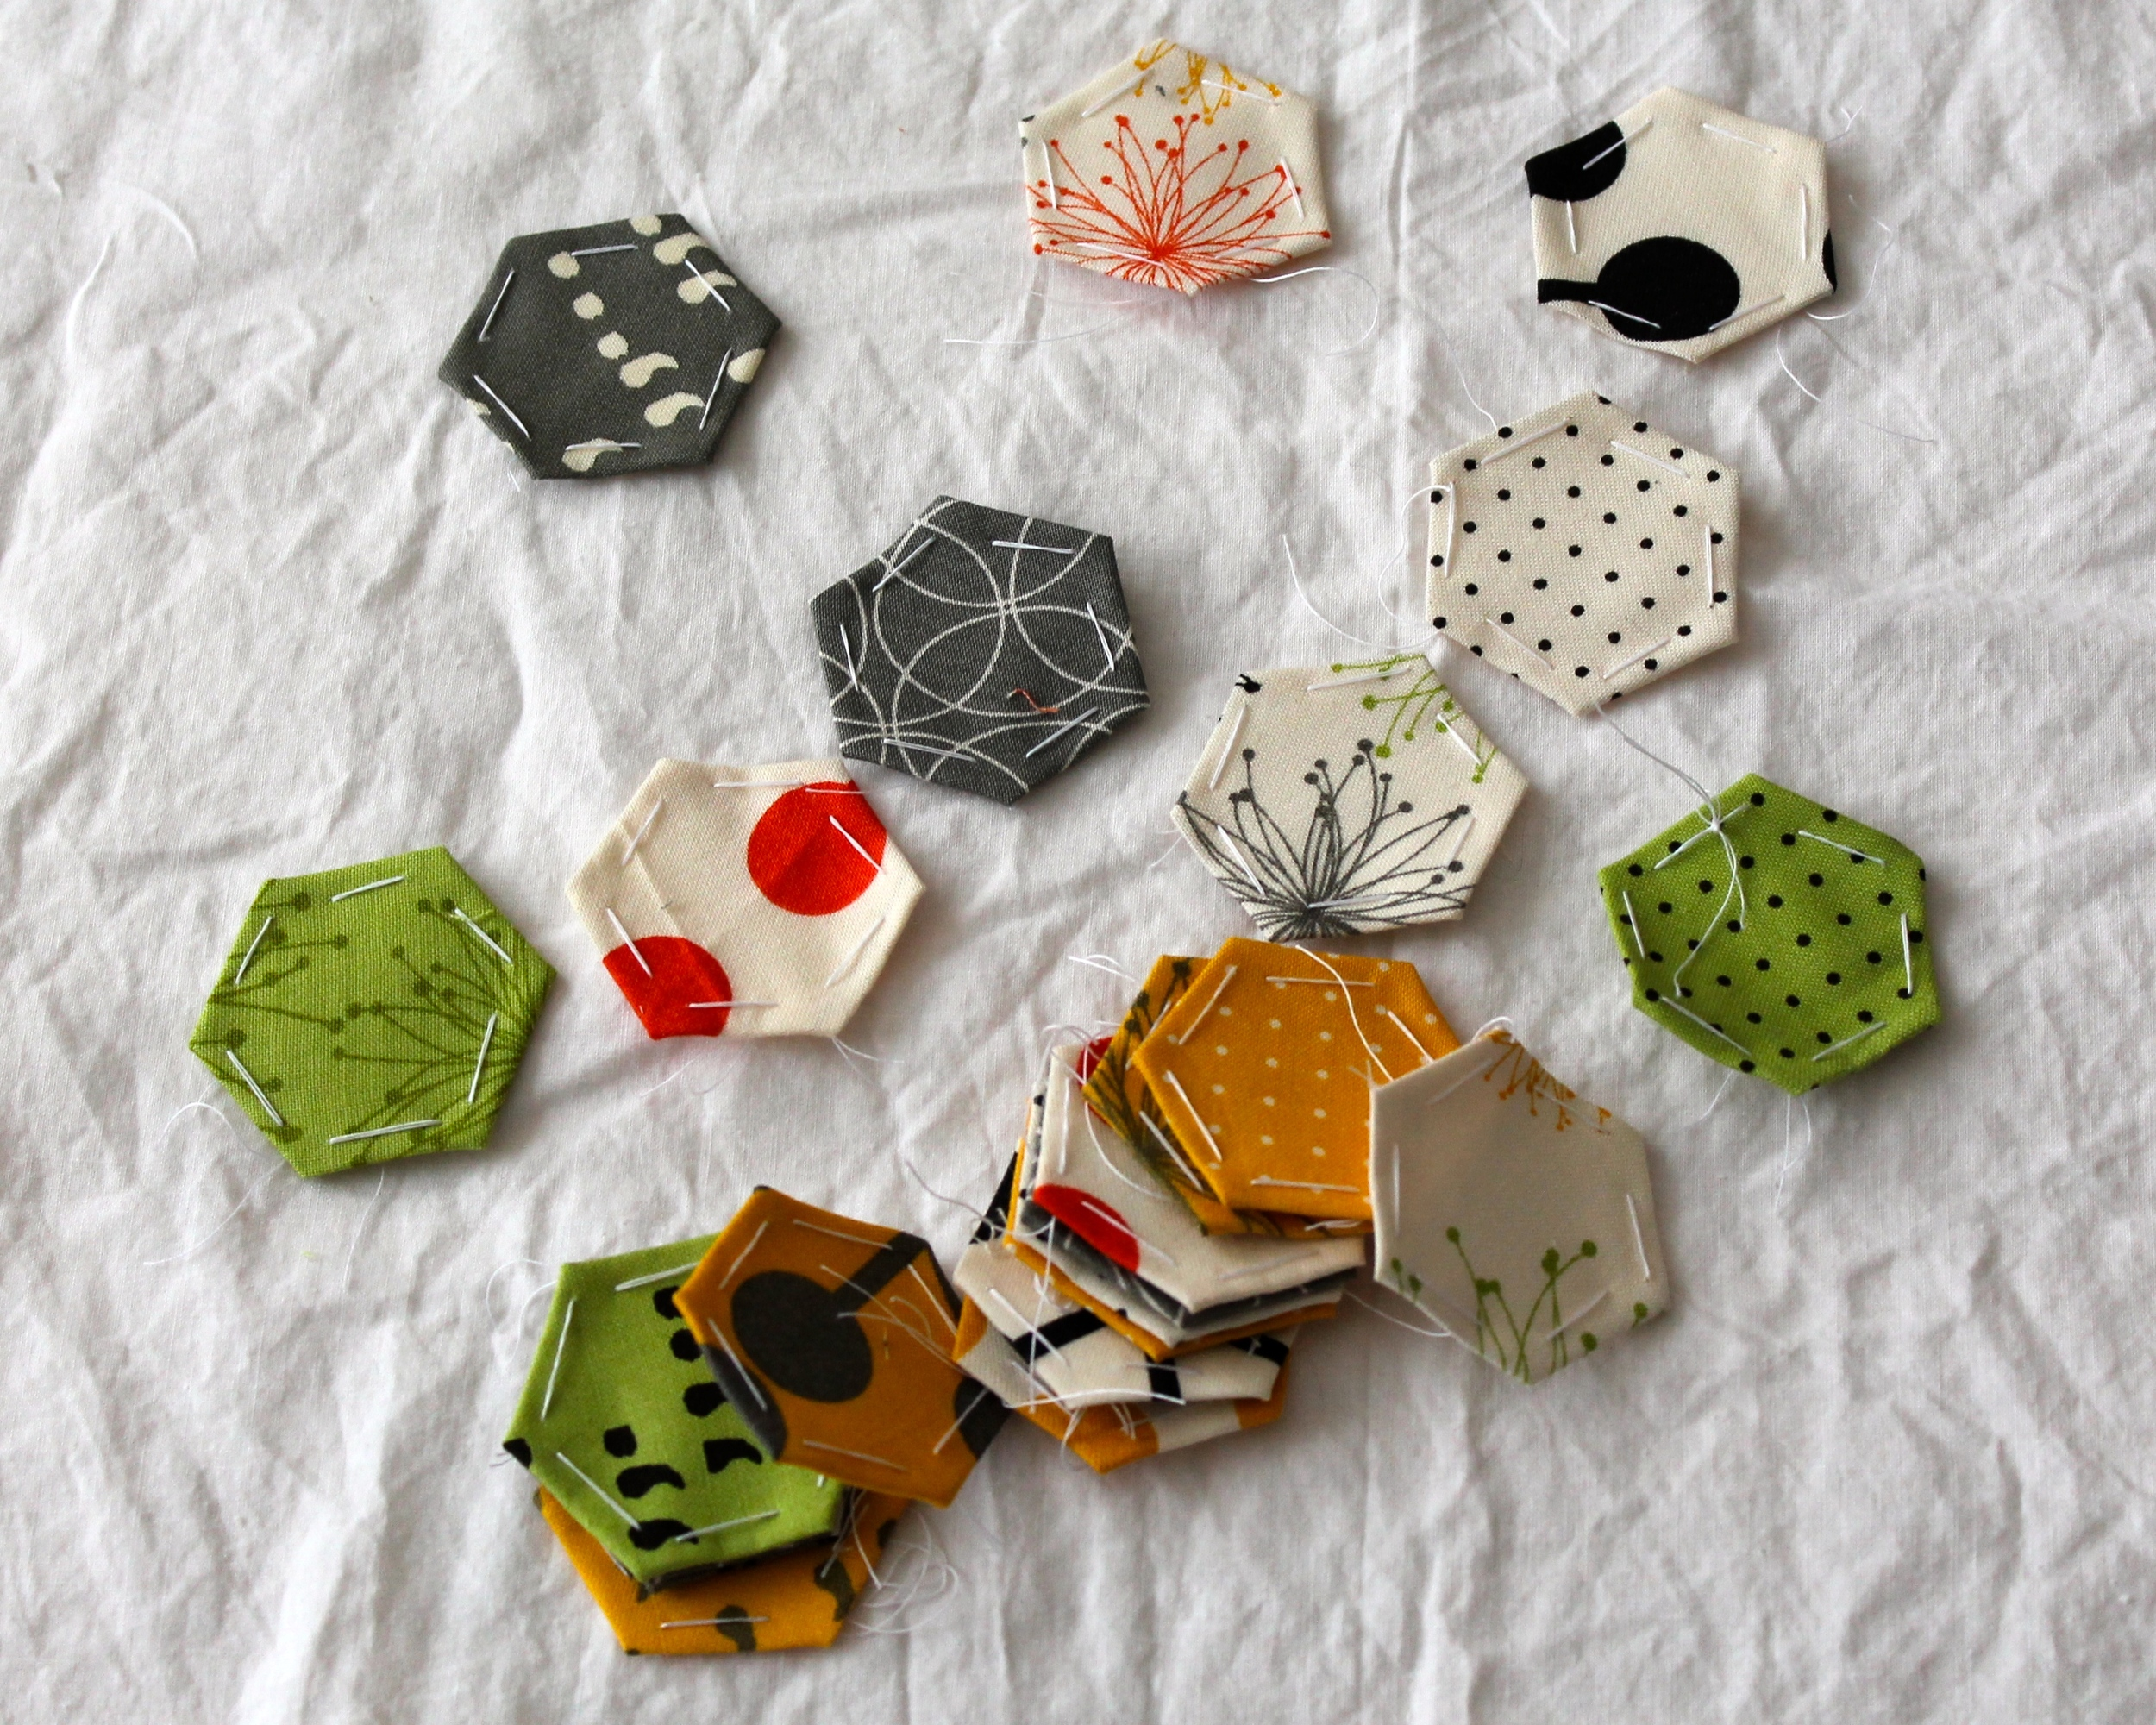 Scattered paper pieced hexagons in yellow, green, gray, white, and orange fabric